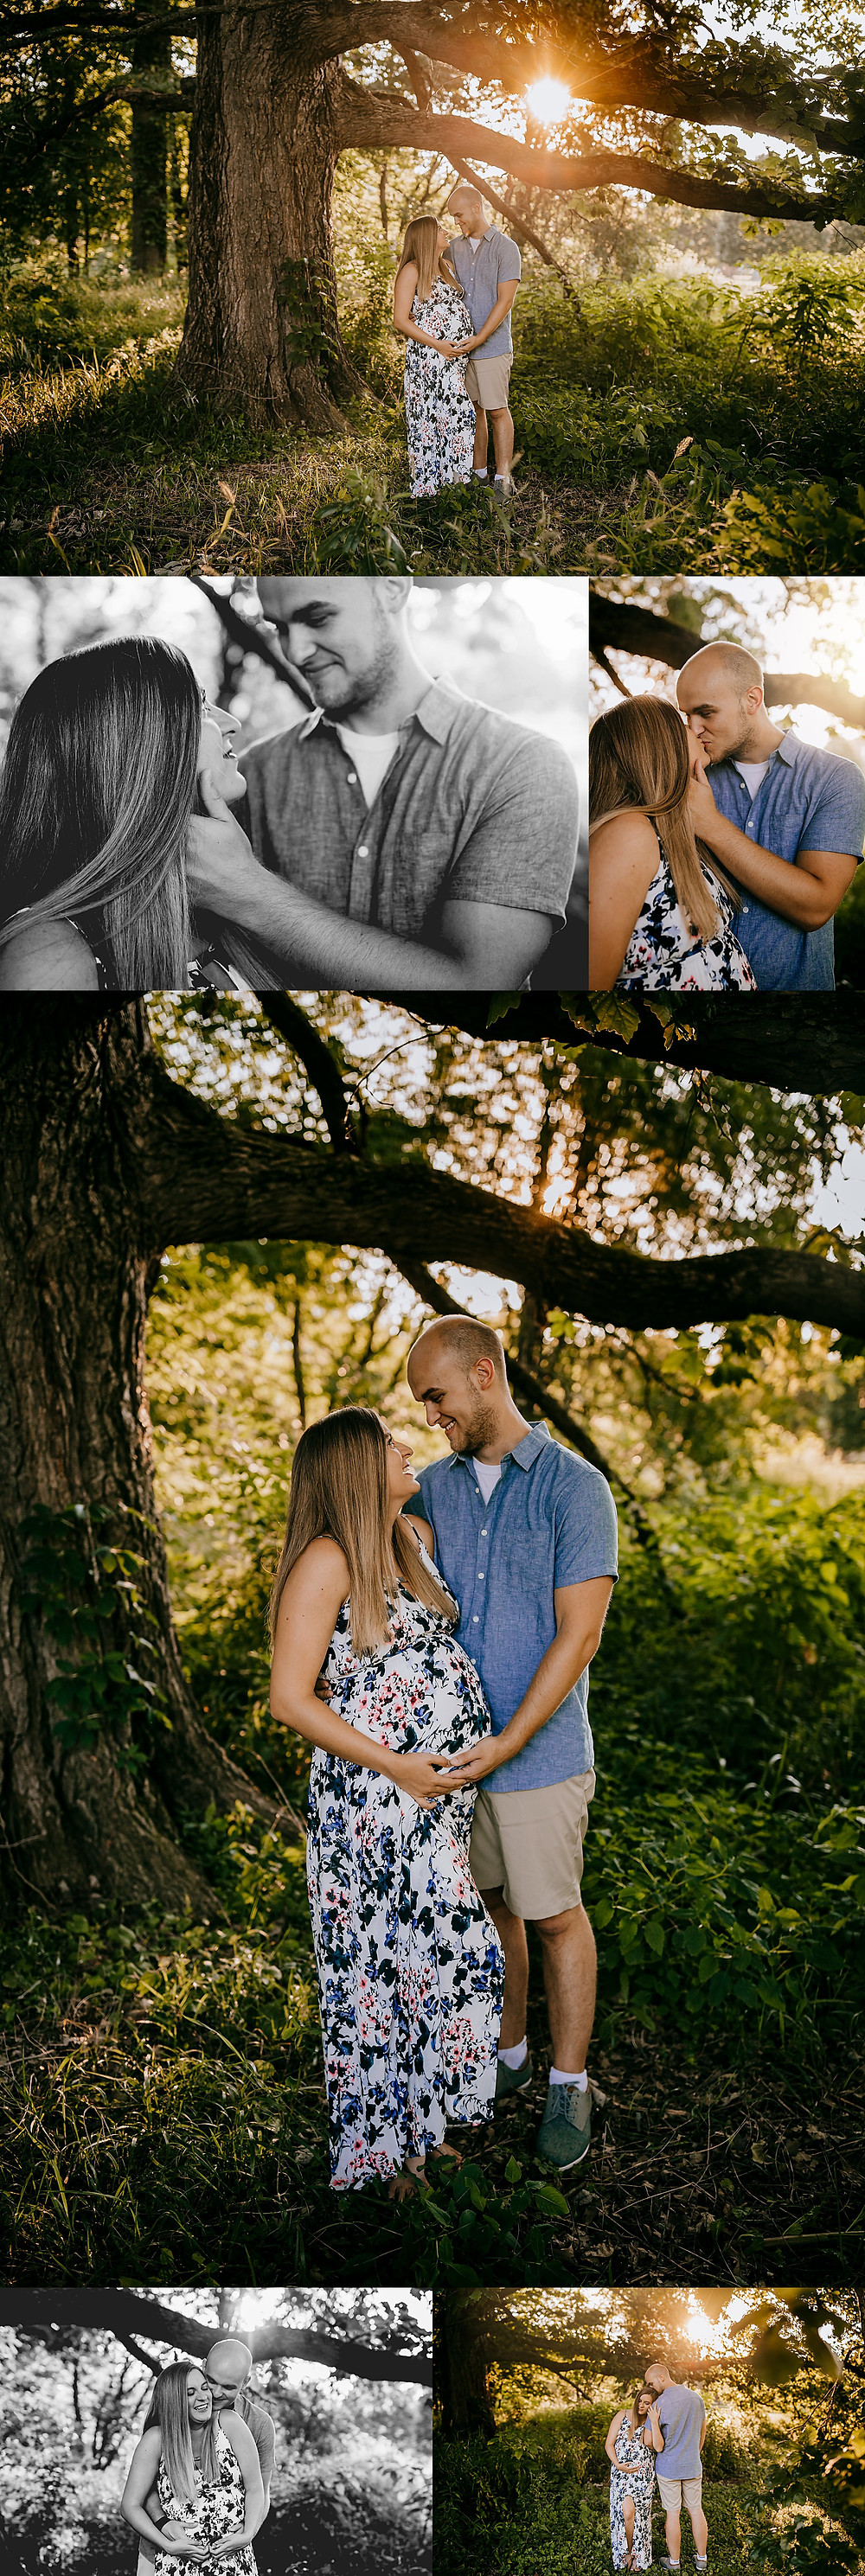 Indianapolis Maternity Photographer | Alex Morris Design | Baby